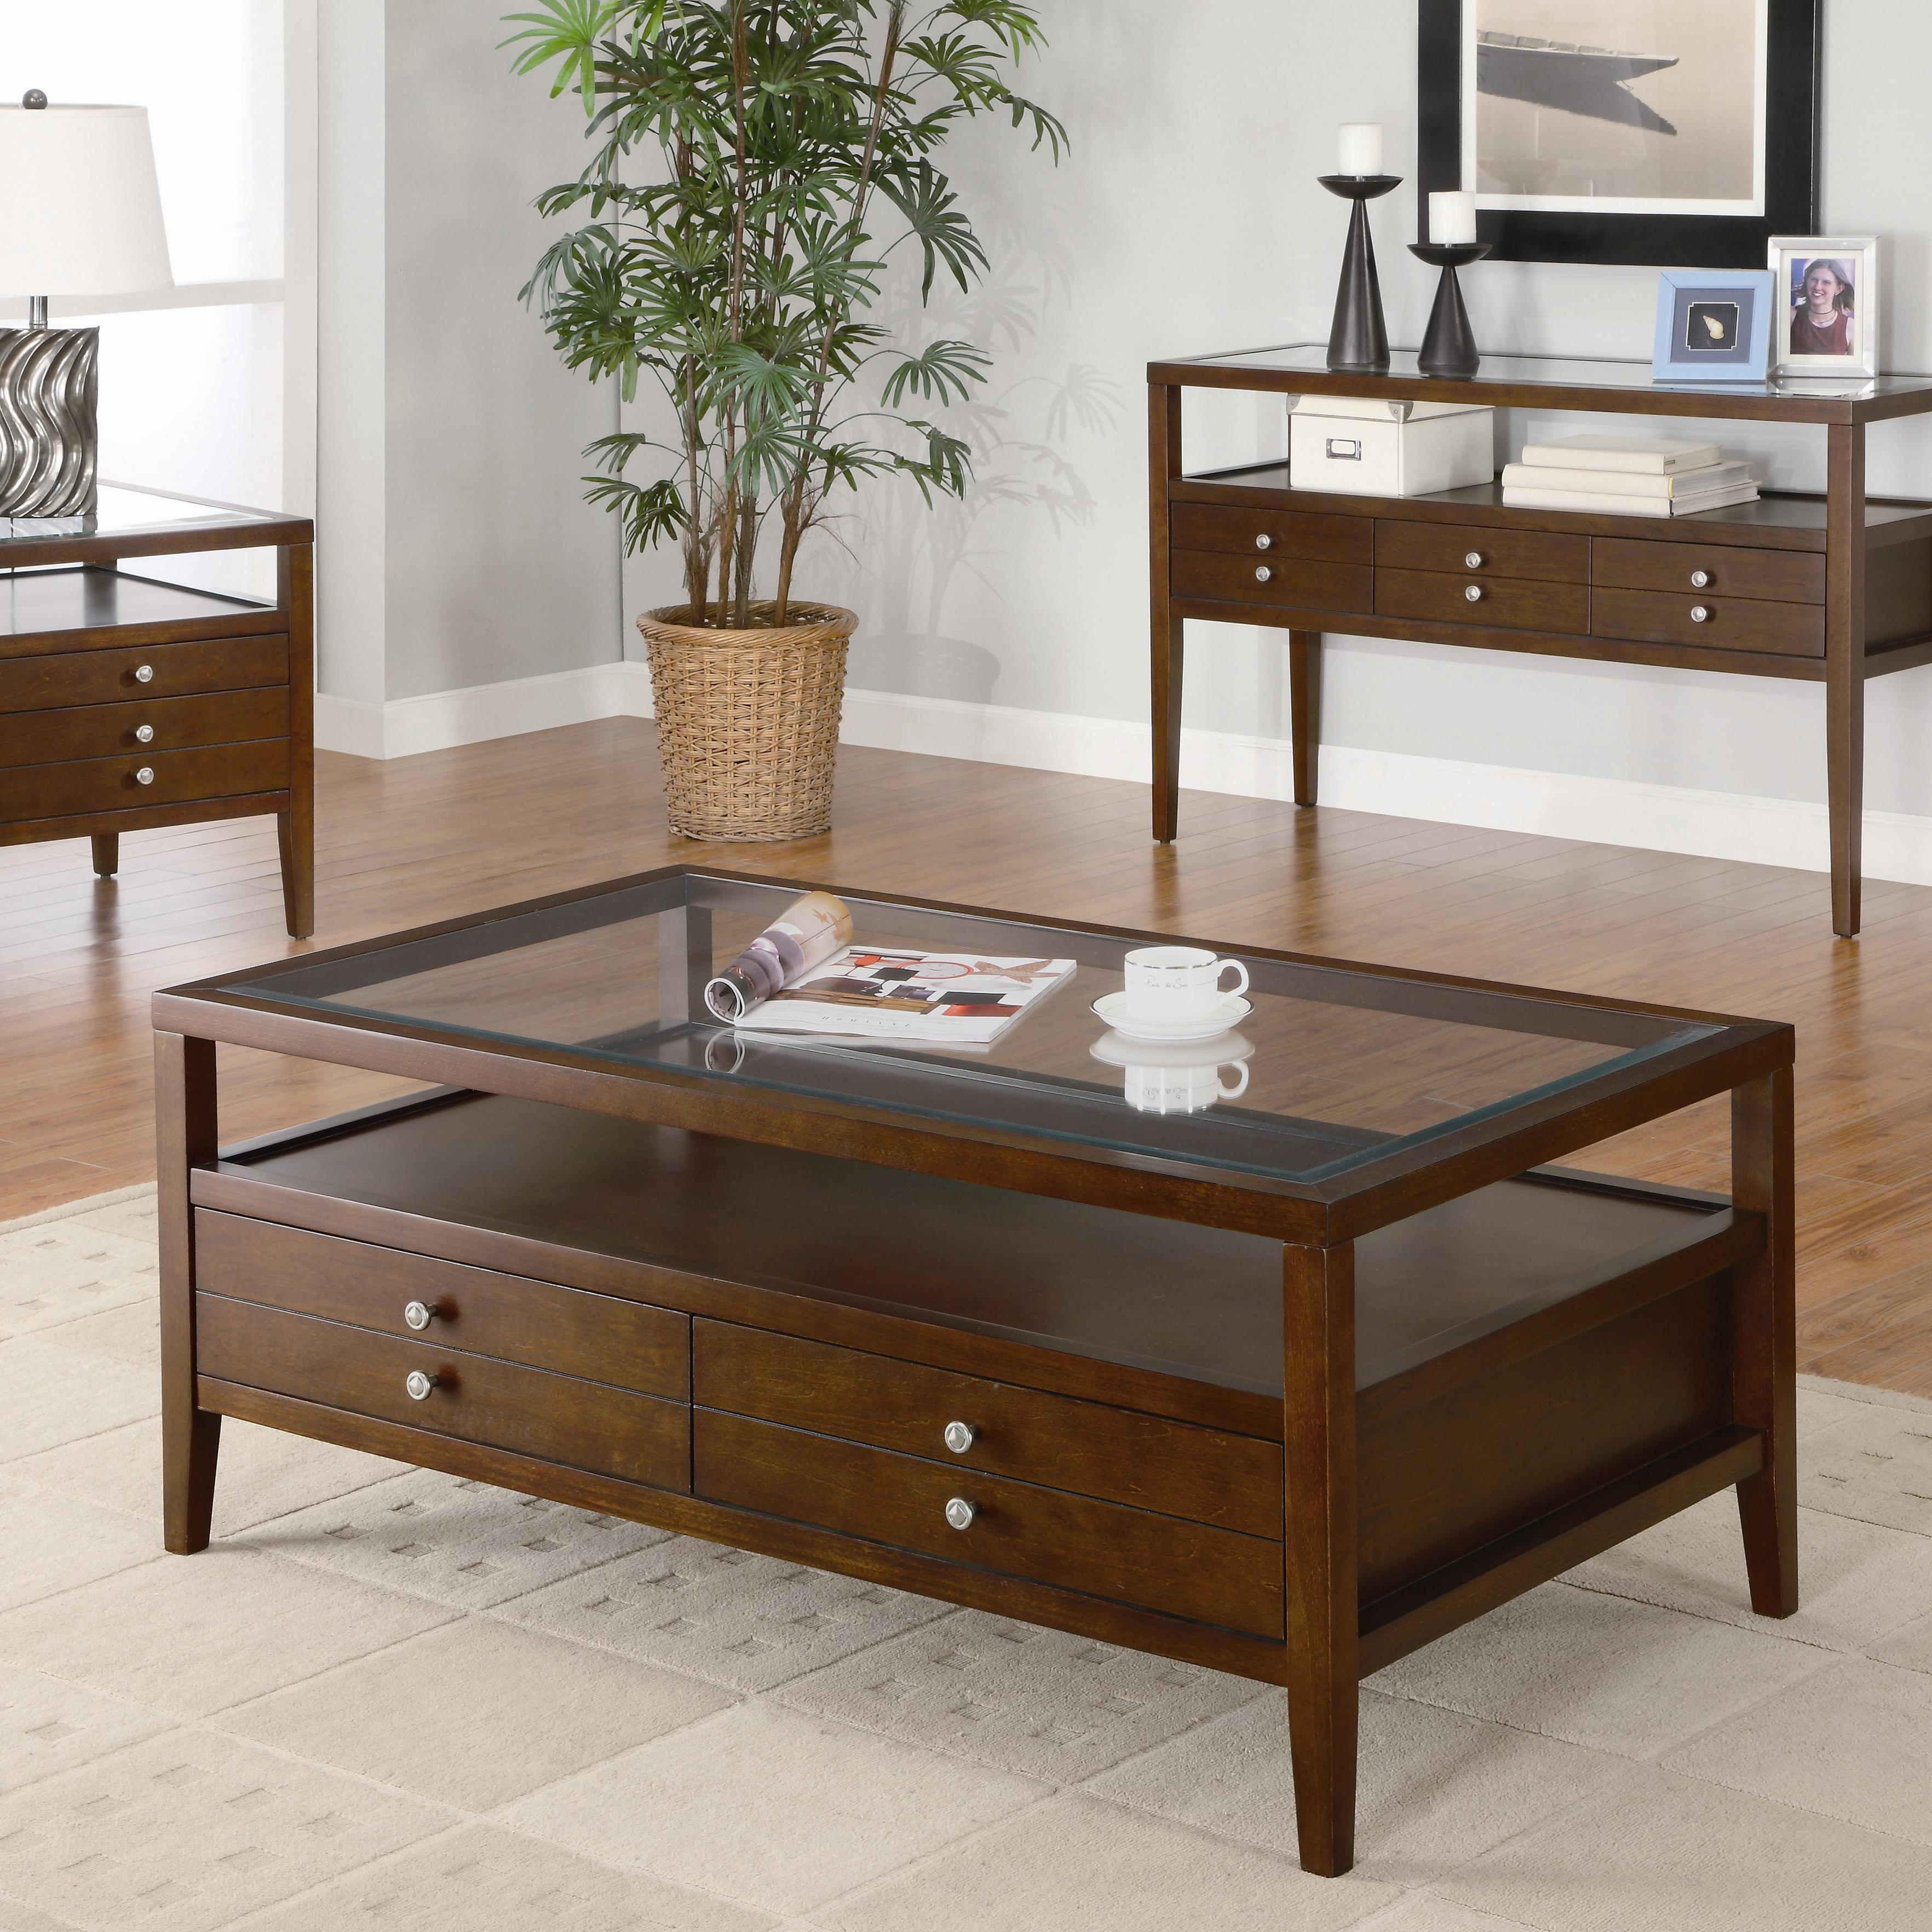 inspire zayden drawer accent table with power strip marine green contemporary unique coffee storage and end sets glass ashley black small thin gold decor bedroom tables target